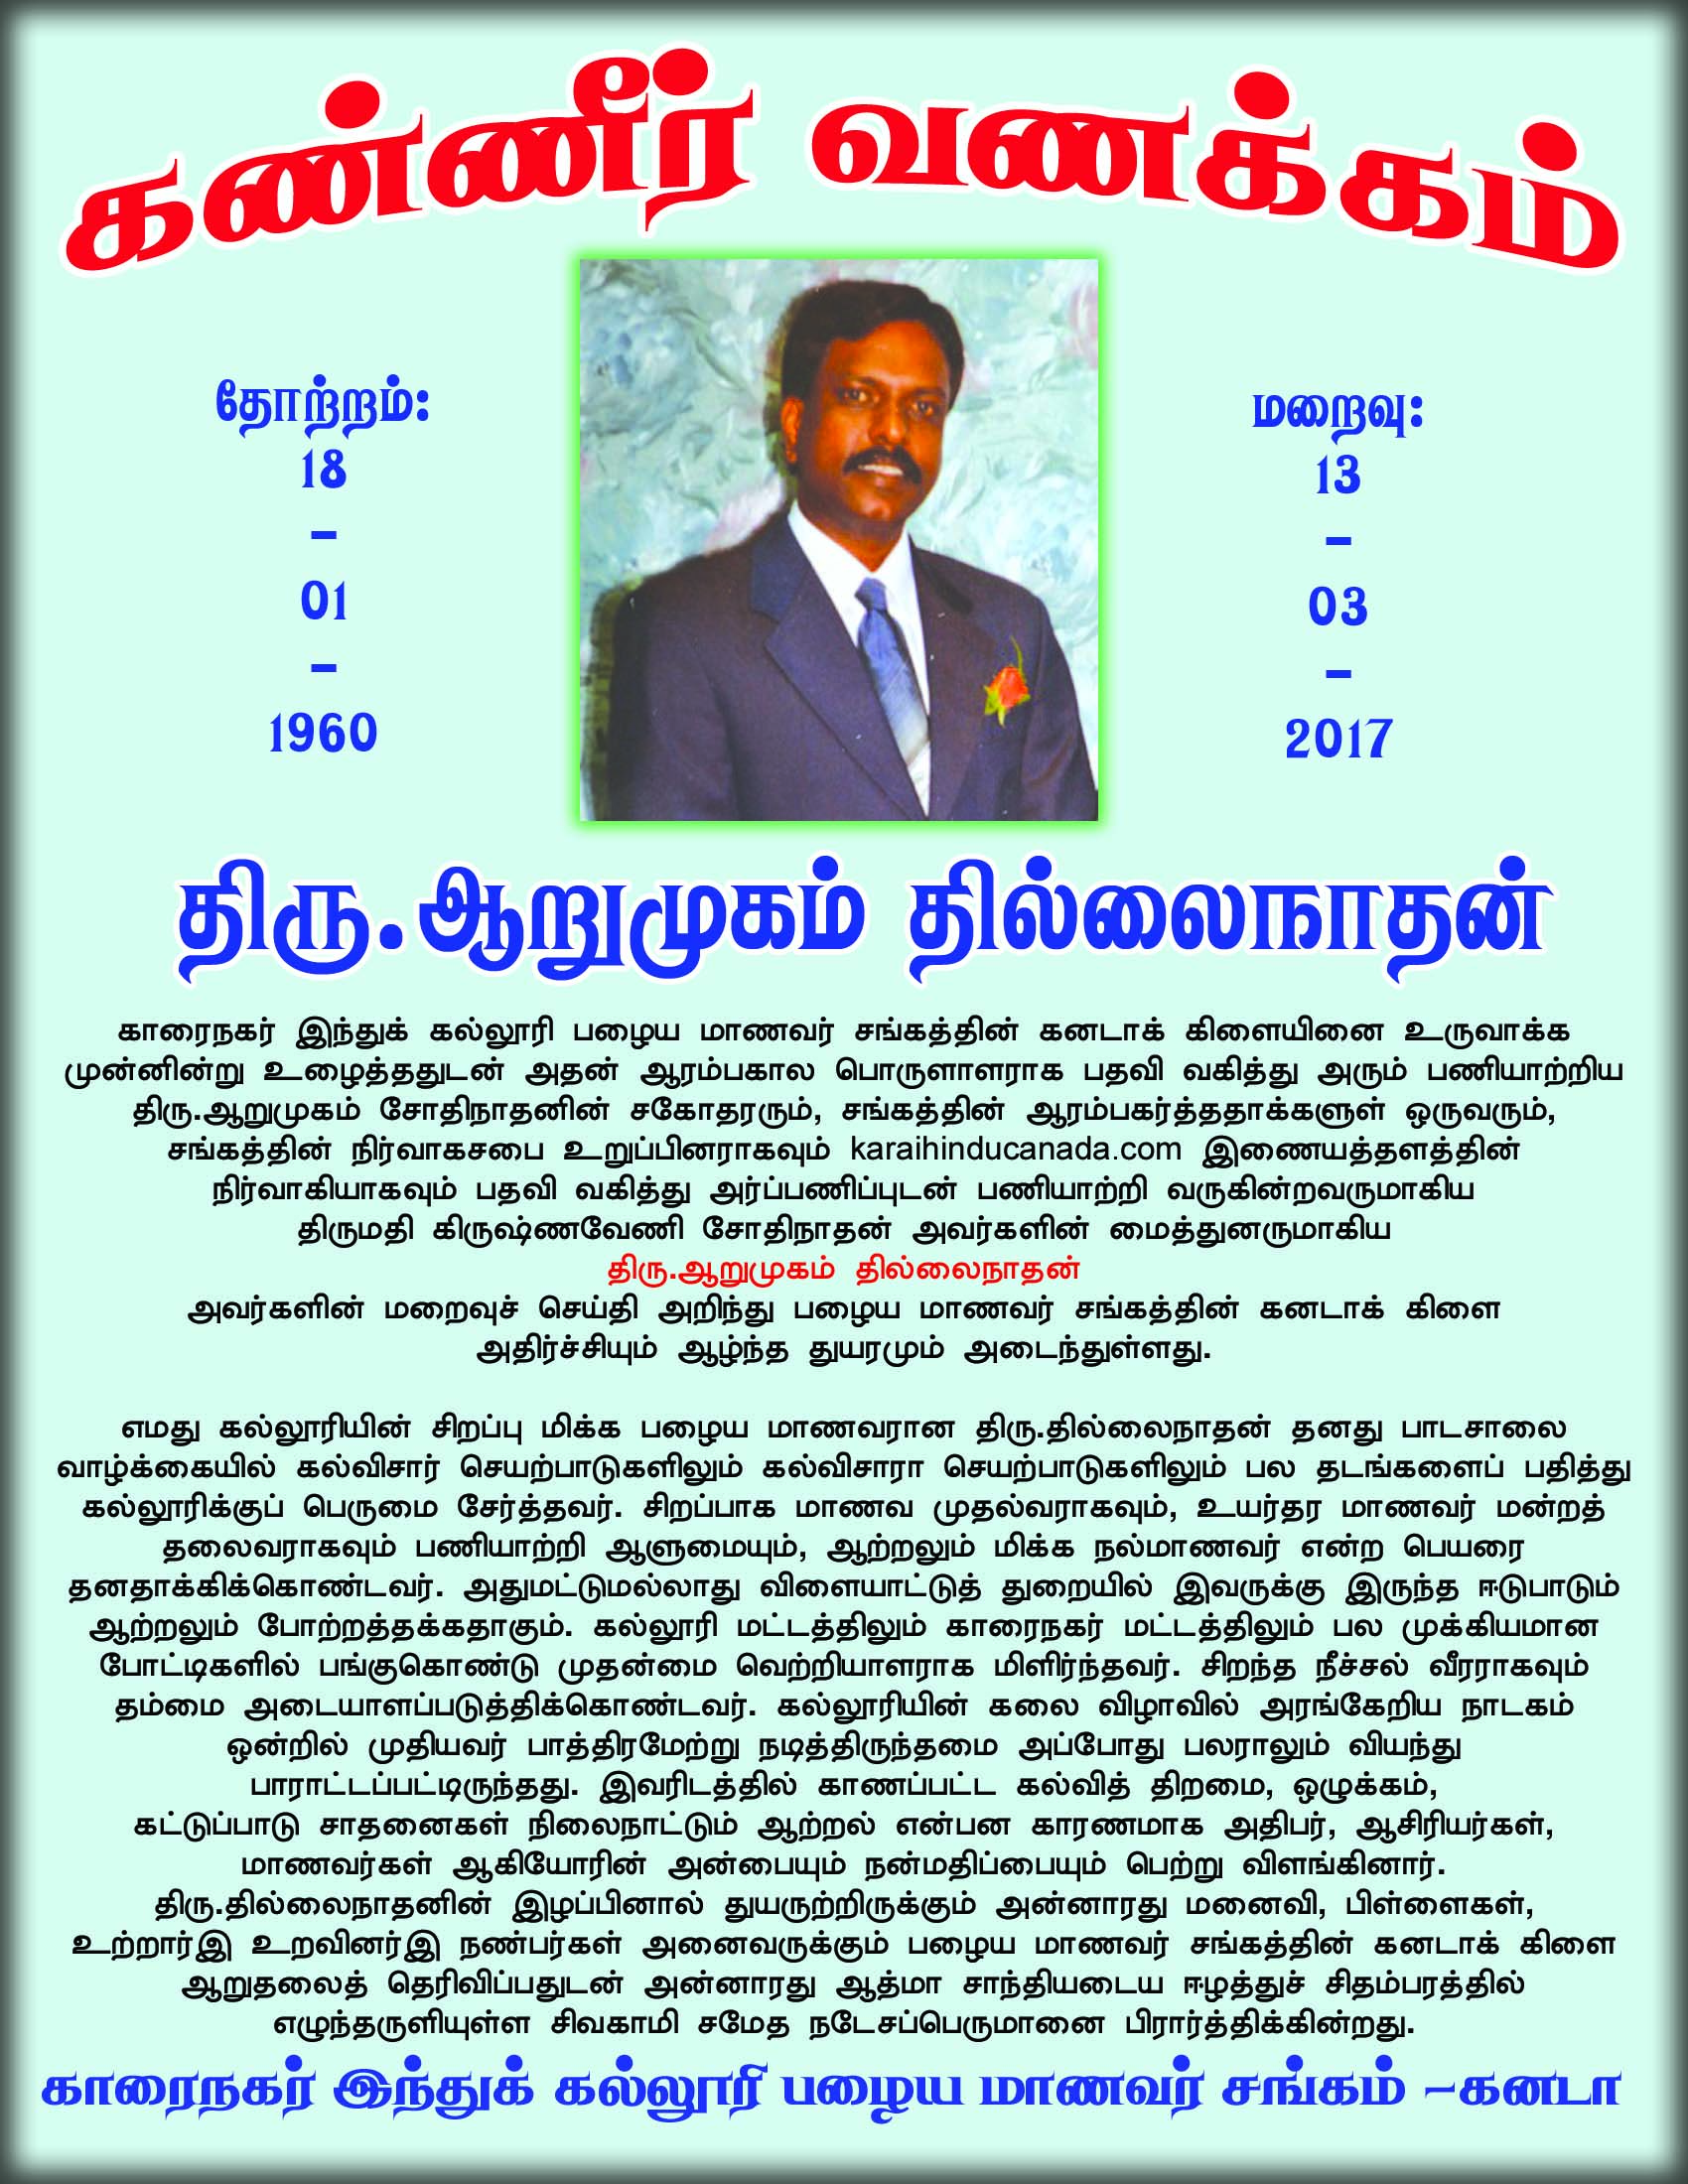 Tribute to Mr.Thillainatahan